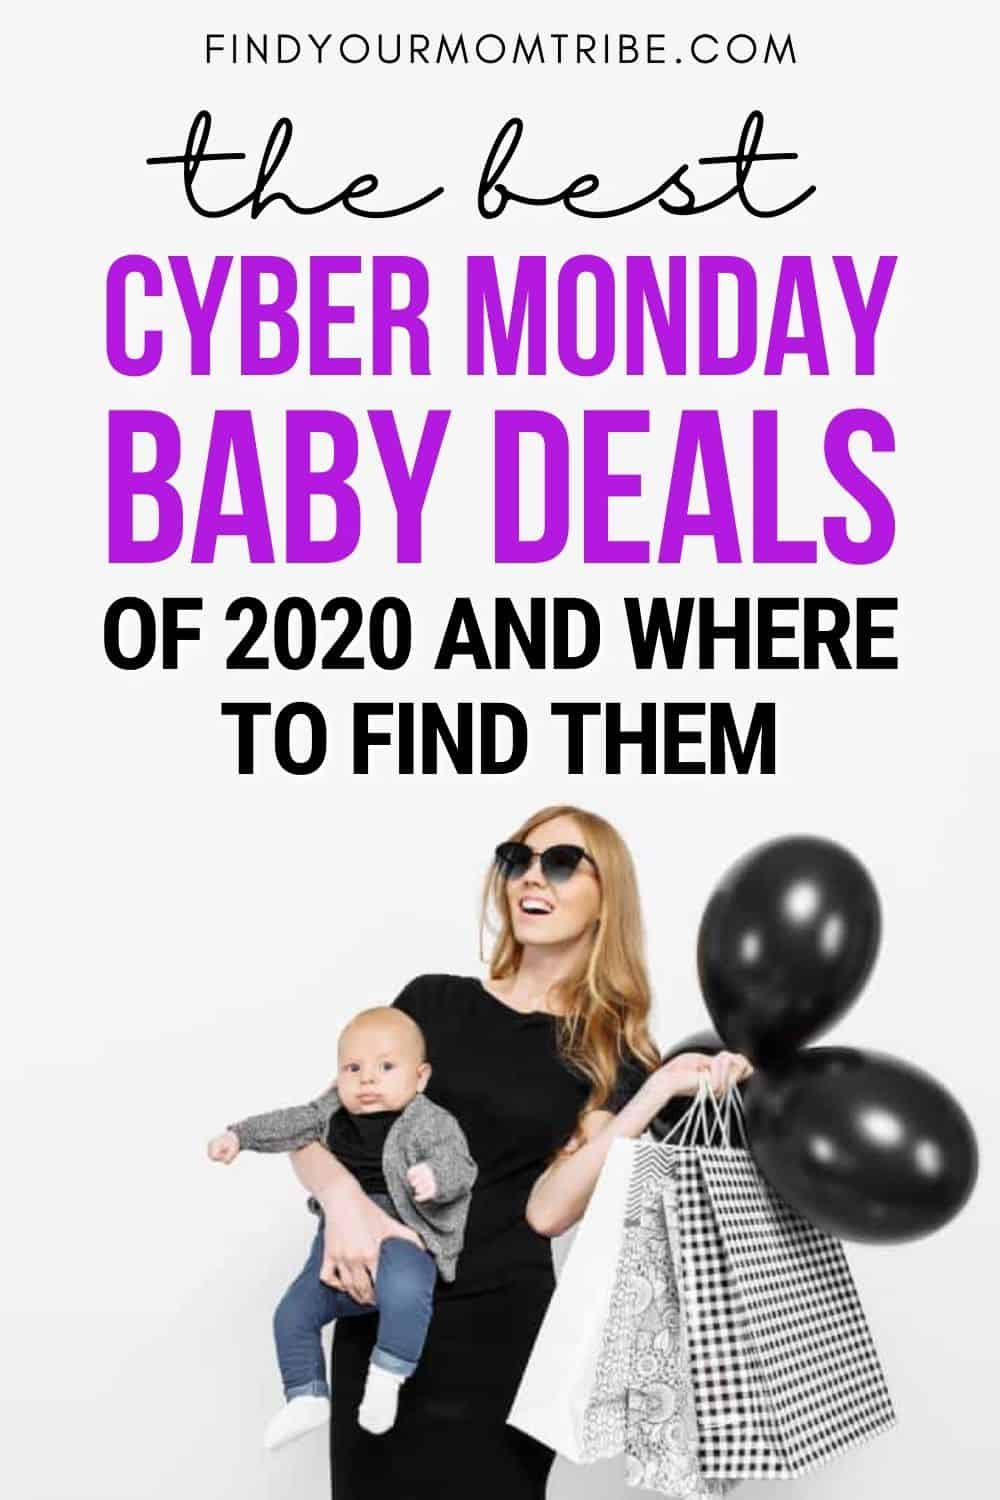 The Best Cyber Monday Baby Deals Of 2020 And Where To Find Them